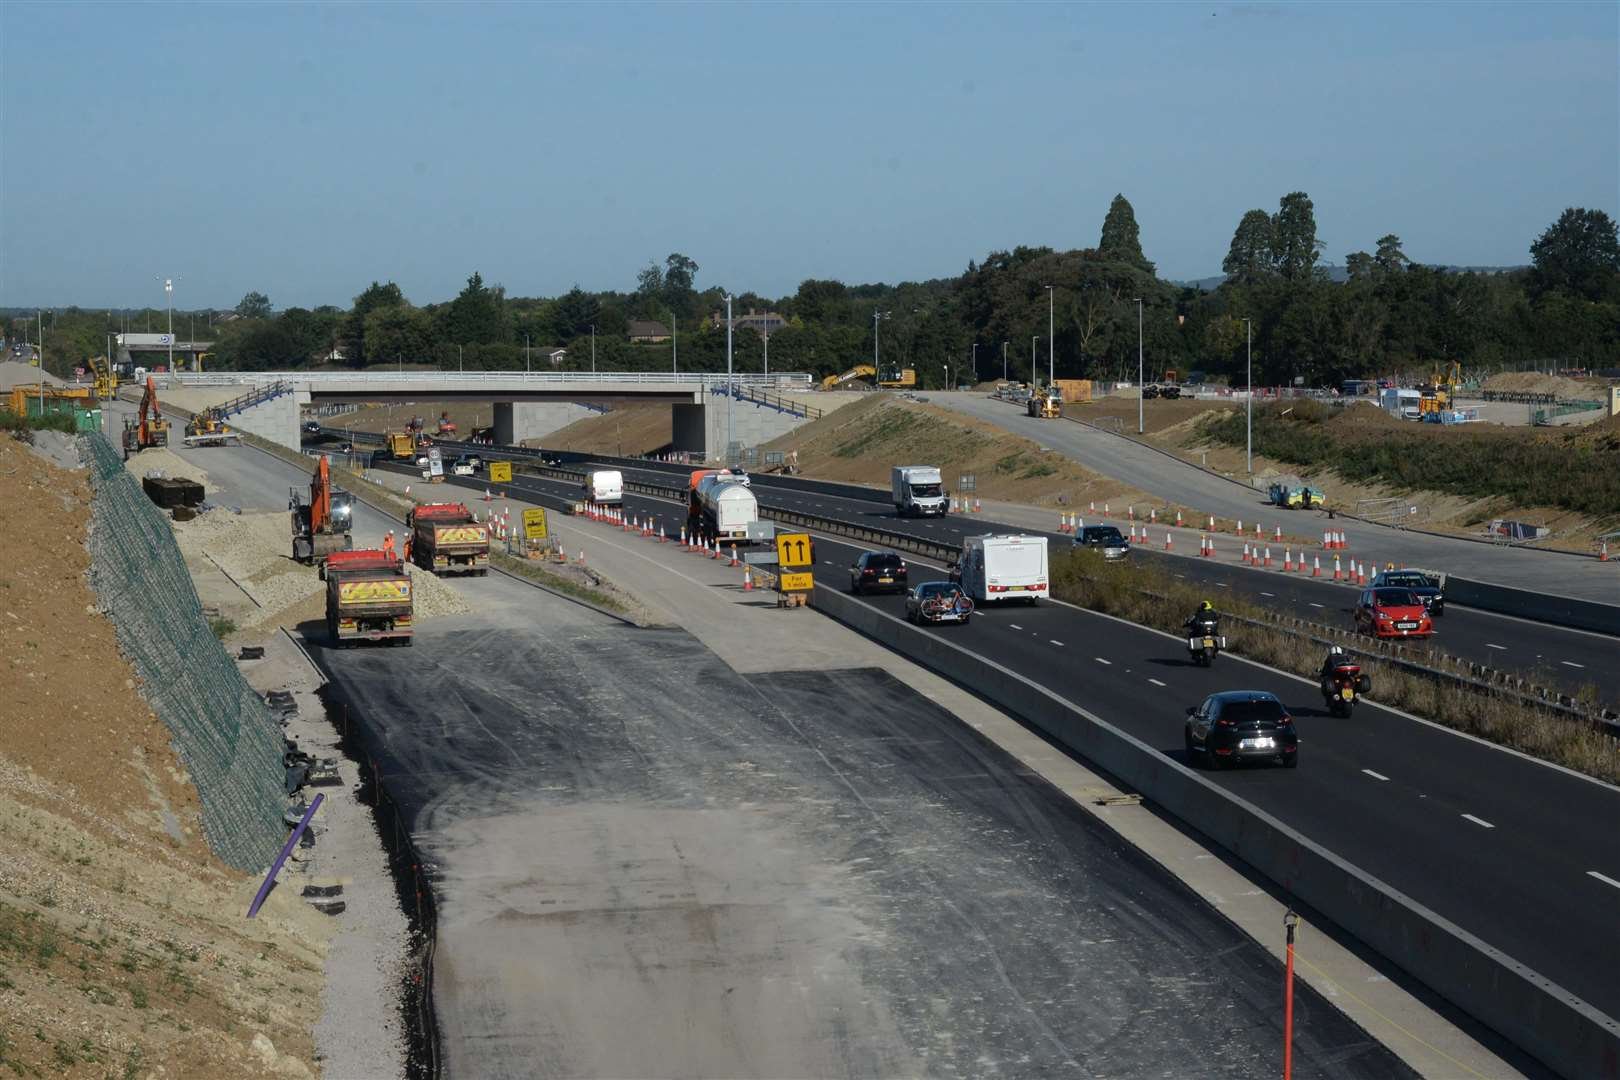 Construction work at the M20 Junction 10a site Picture: Chris Davey